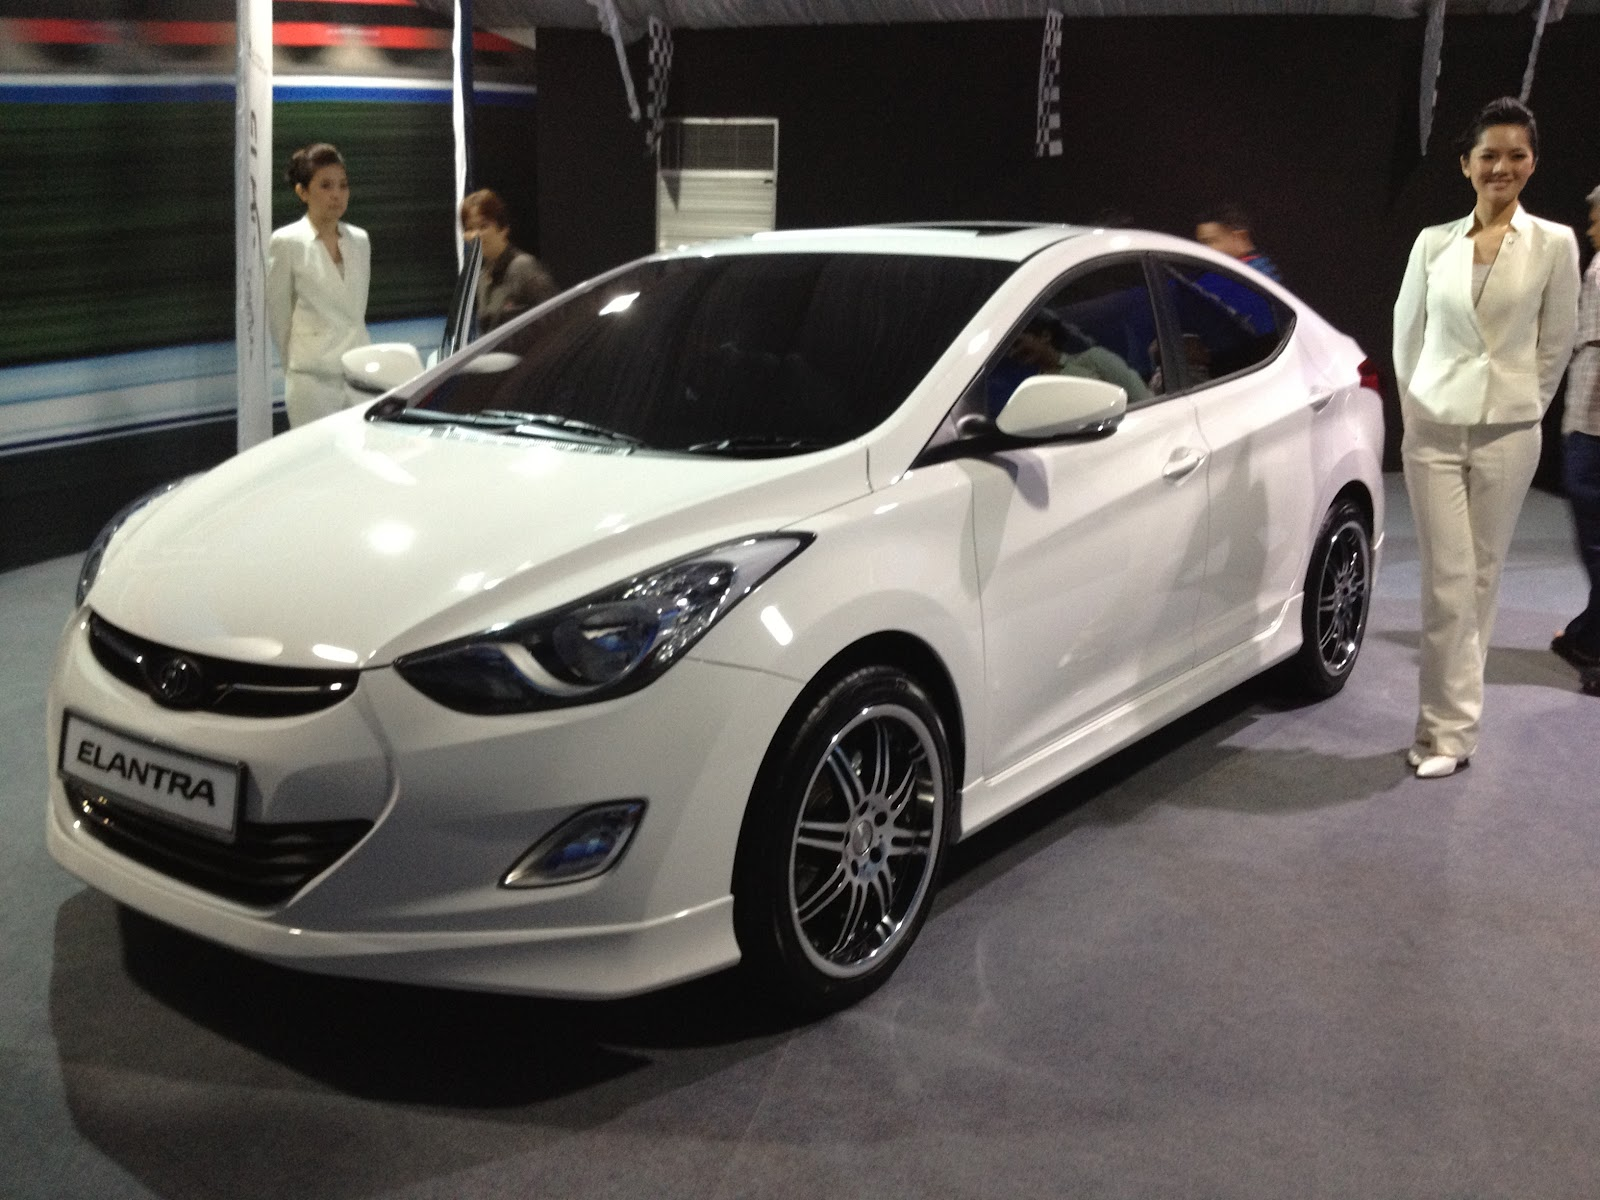 The Hyundai Elantra Hello Impossible Kensomuse Power Steering Leak Forums Forum Its A Wet Morning And Road Has Always Been Challenge To Test Drive Cars At Least Thats What I Thought When Made My Way